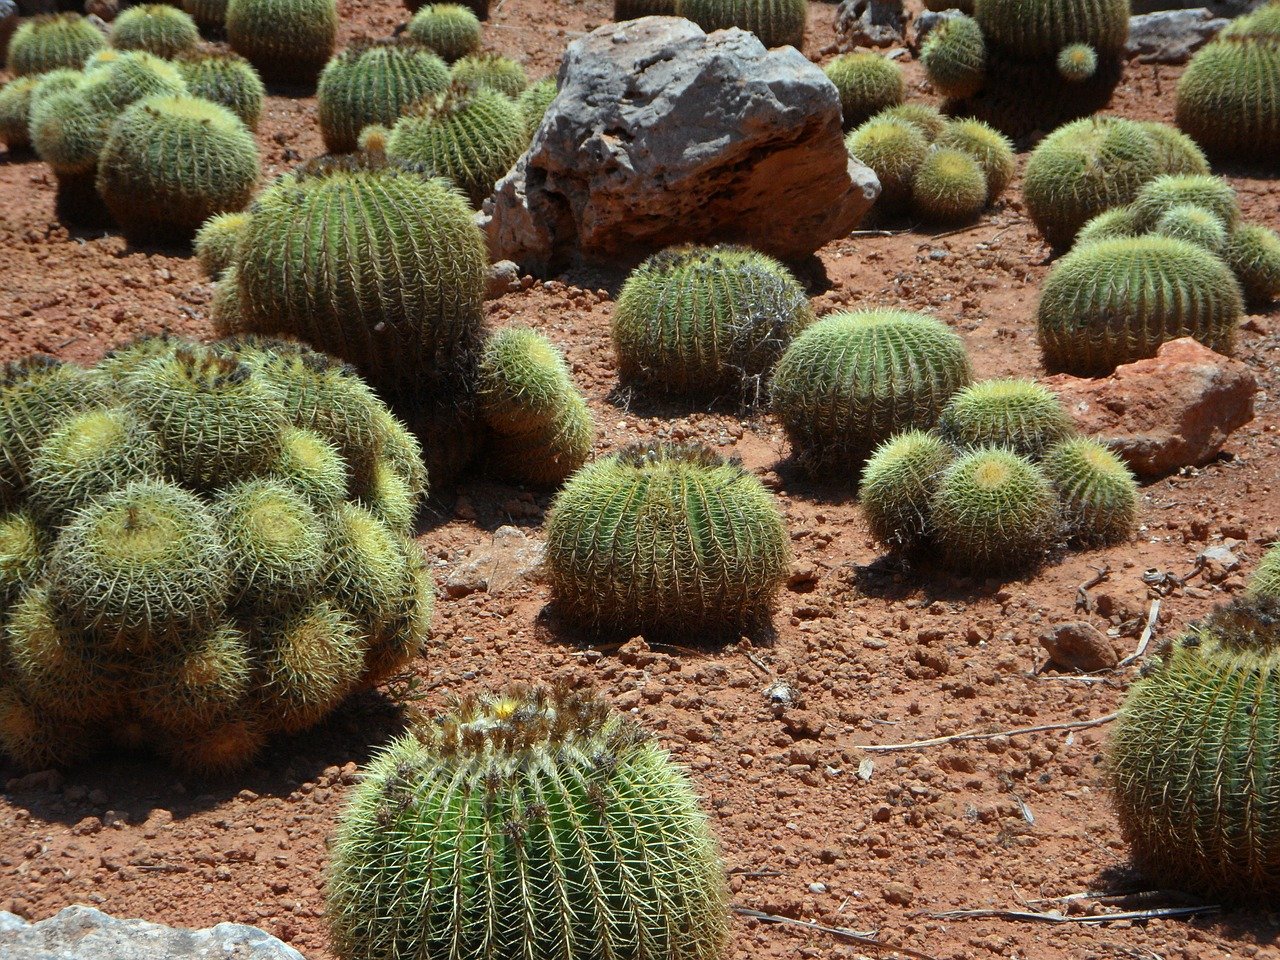 cactus,ball cactus,plant,cactus garden,prickly,globose,desert,flora,spur,free pictures, free photos, free images, royalty free, free illustrations